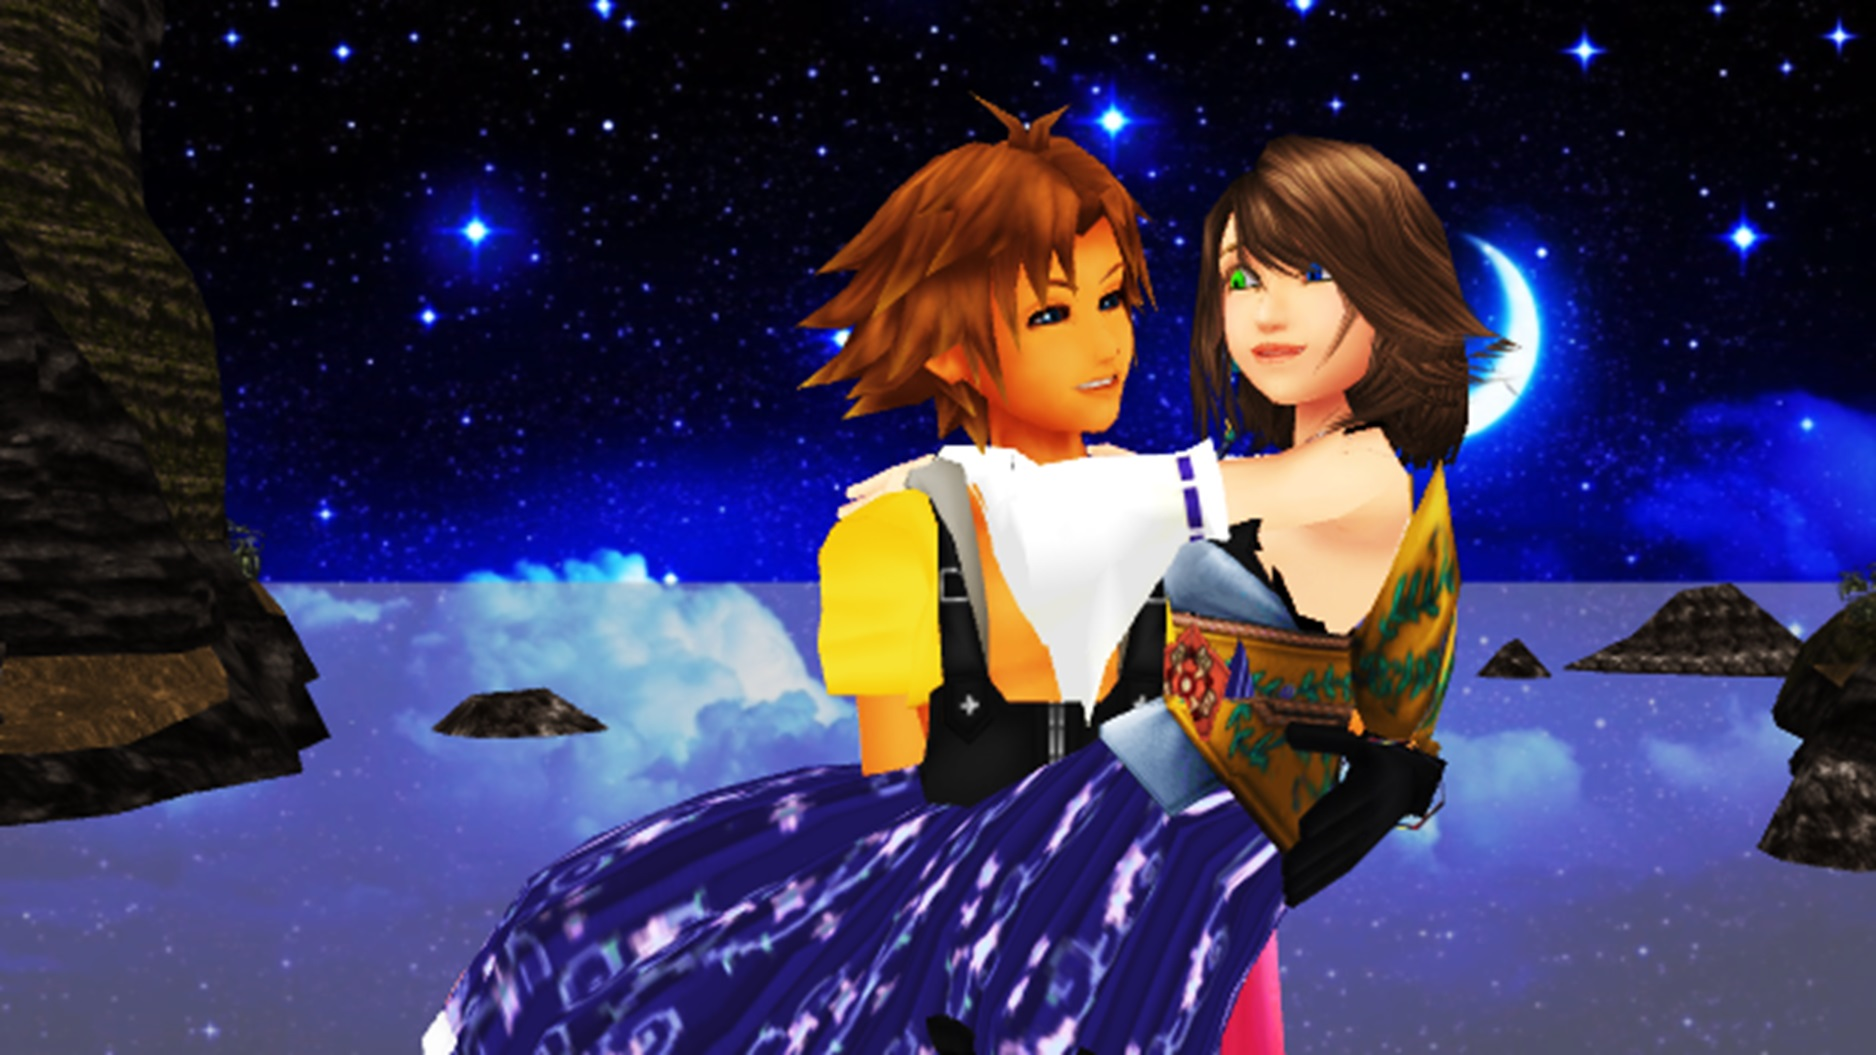 Final Fantasy X images Tidus and Yuna HD wallpaper and background